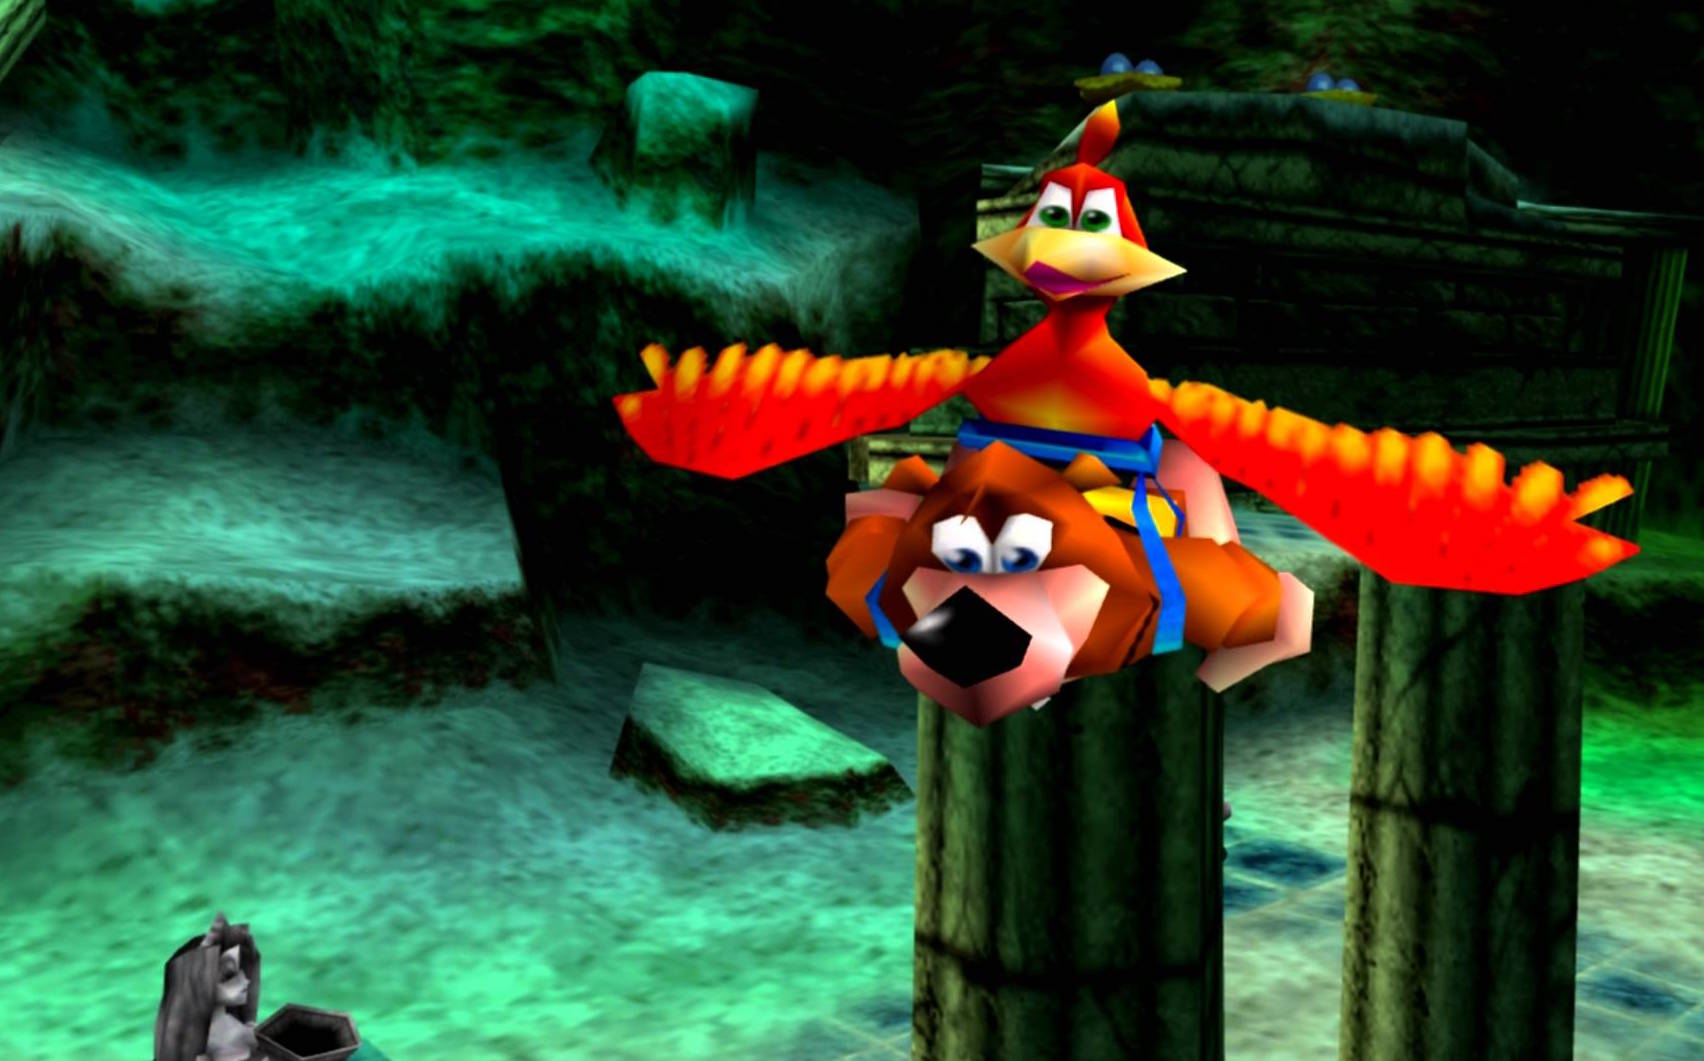 Banjo Kazooie Everything And The Kitchen Sink